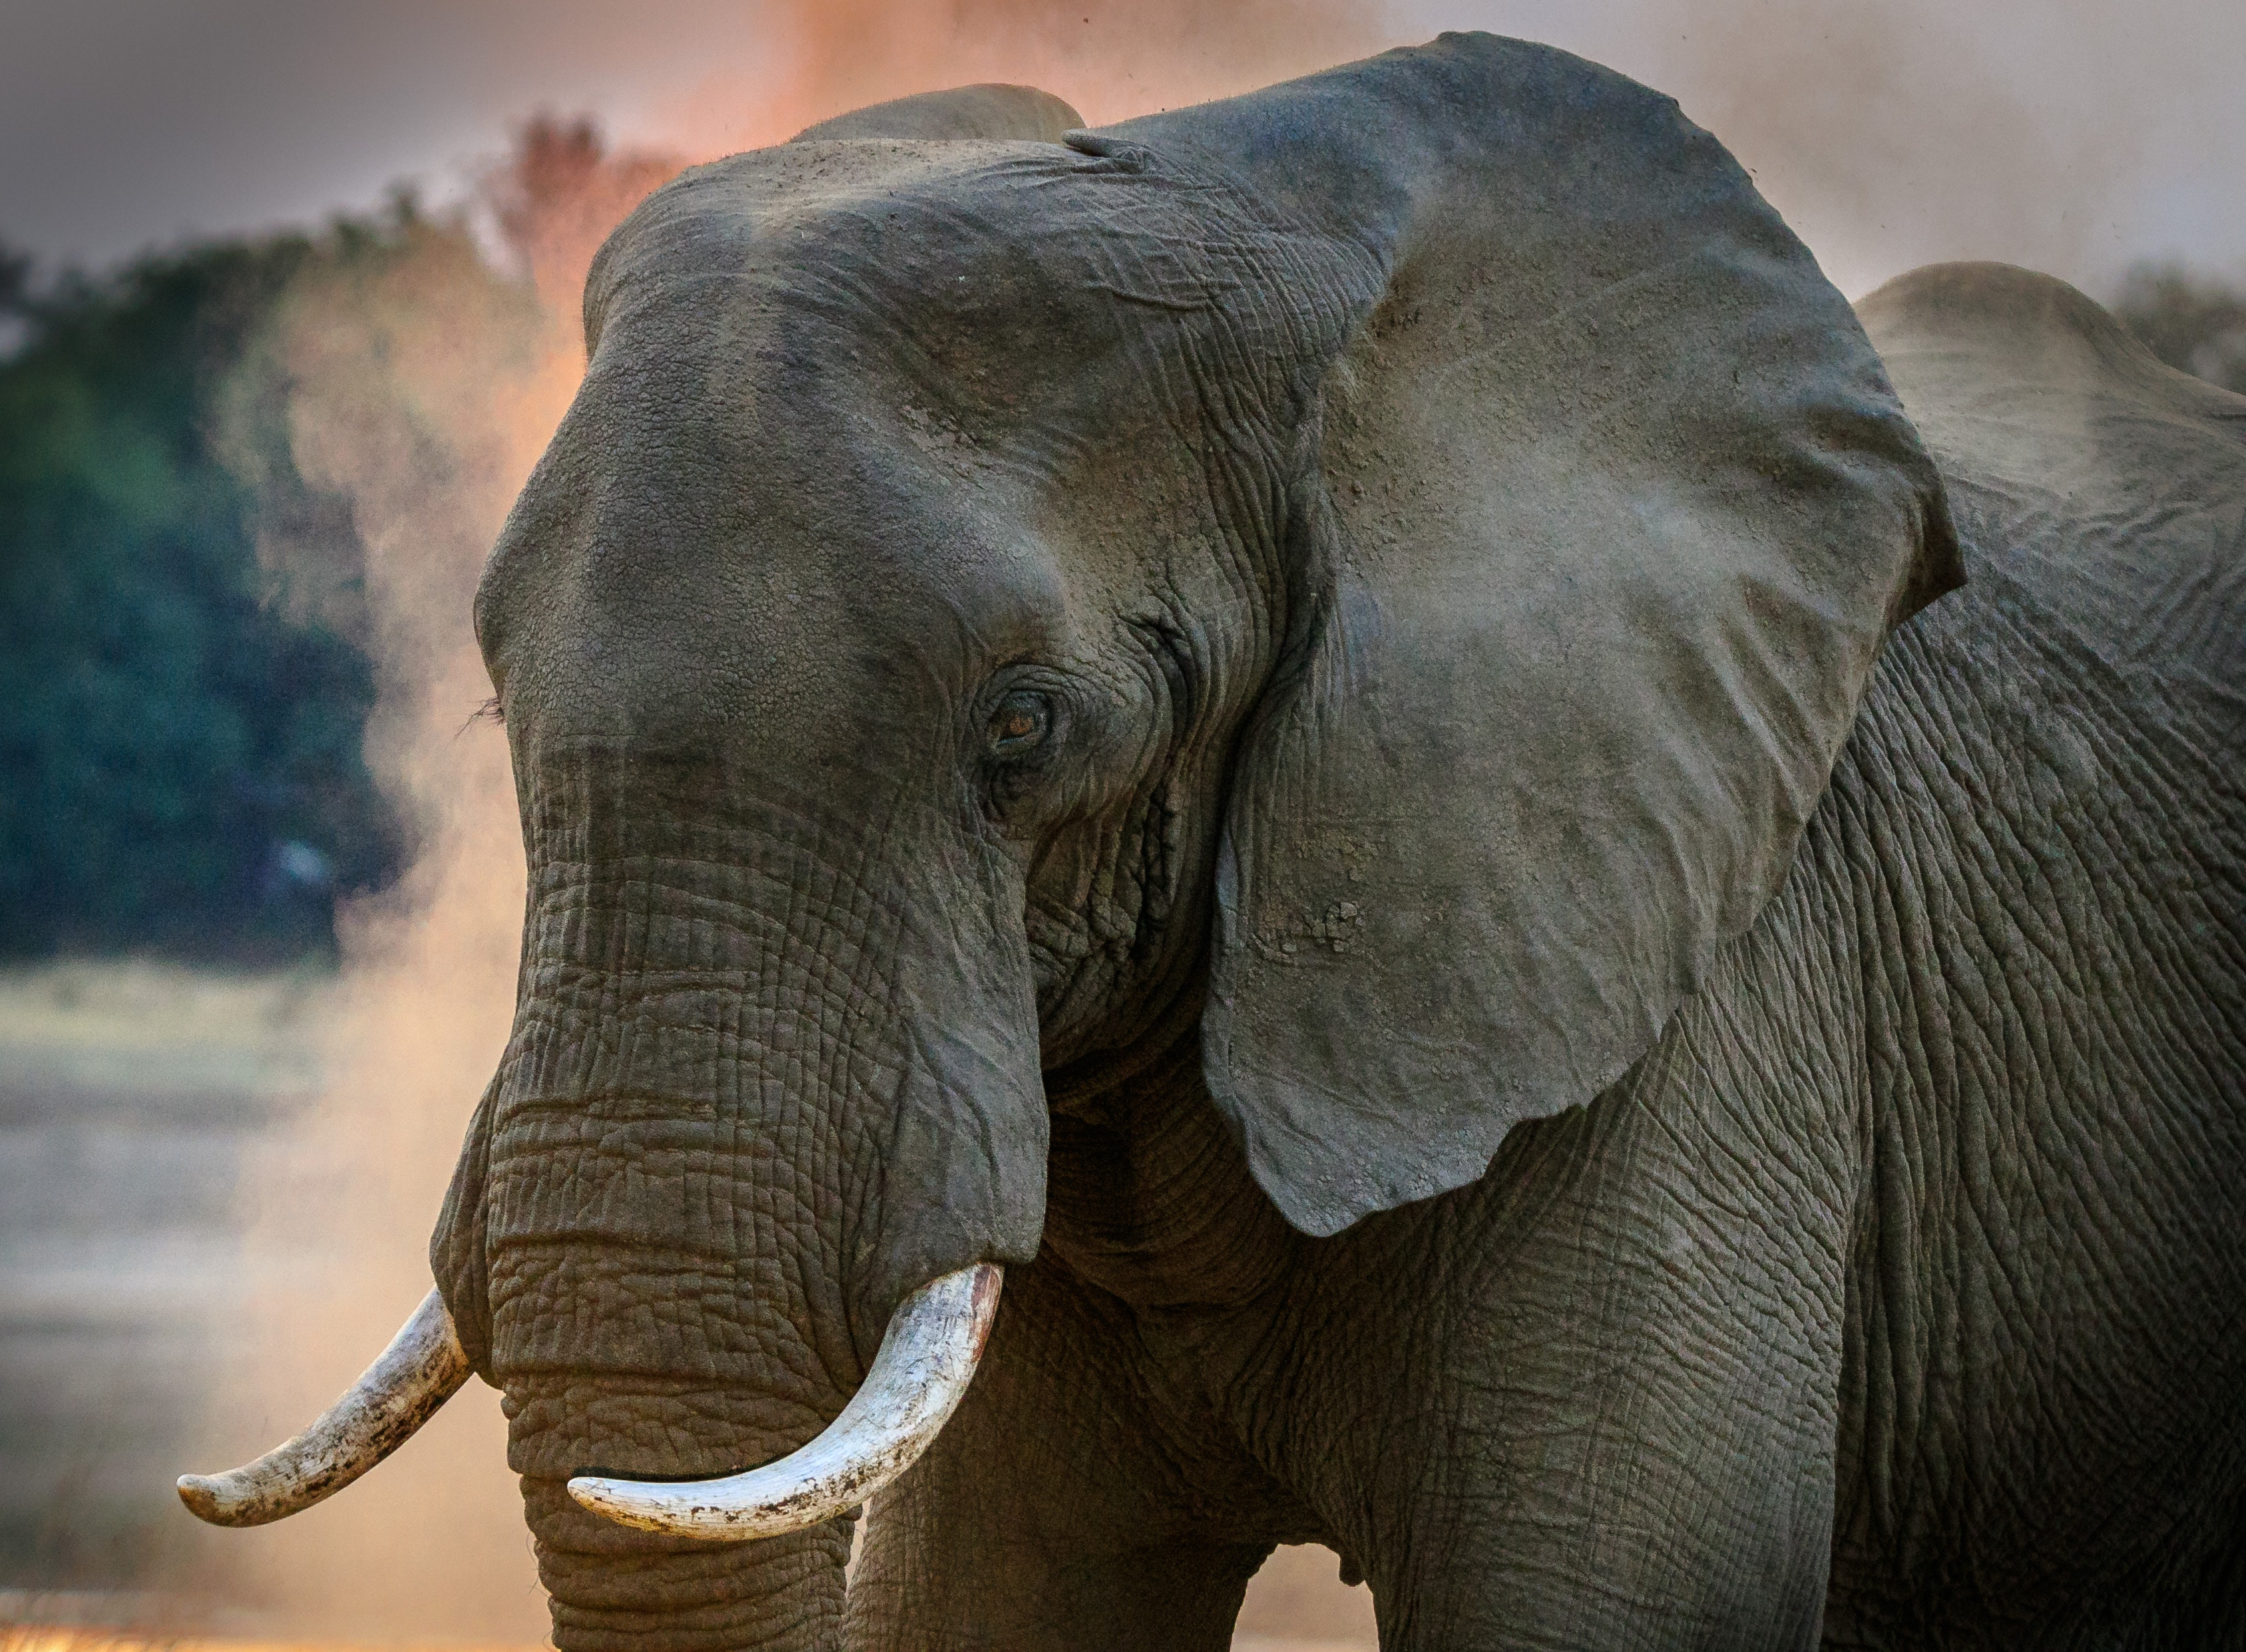 Beautiful Pictures Of Elephant In Hd: Breathtaking Elephant Photos · Pexels · Free Stock Photos